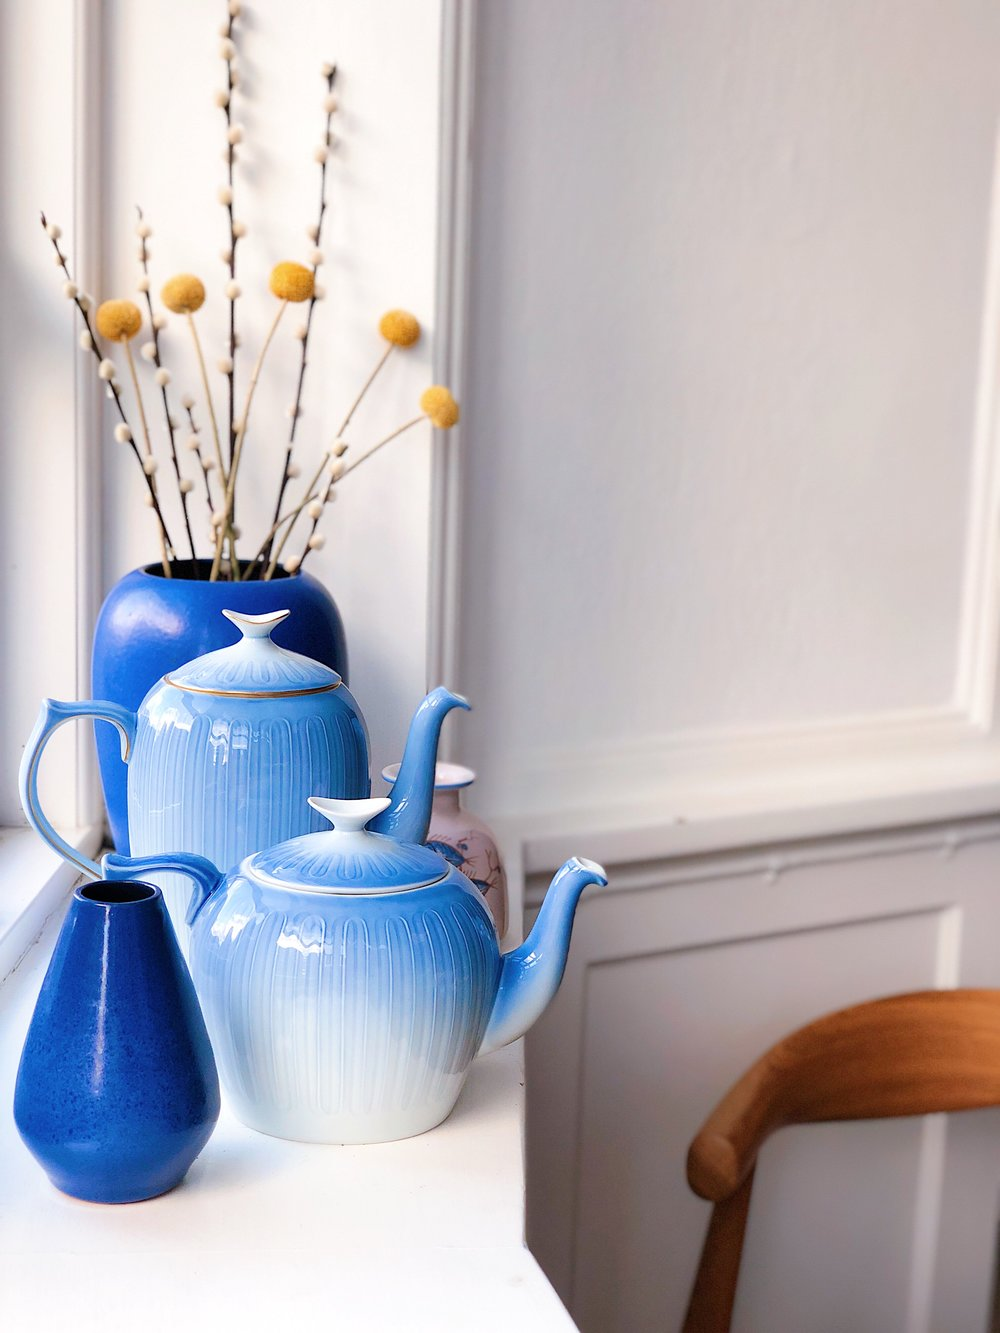 "The tea and coffee pots are Danish classics from Bing & Grøndahl, from a series known as ""Ballerina"", found secondhand online and at Brugtvare Terminalen. The smaller, blue vase was found at The Basement, while the larger one at the back was purchased alongside the tea pot at Brugtvare Terminalen."